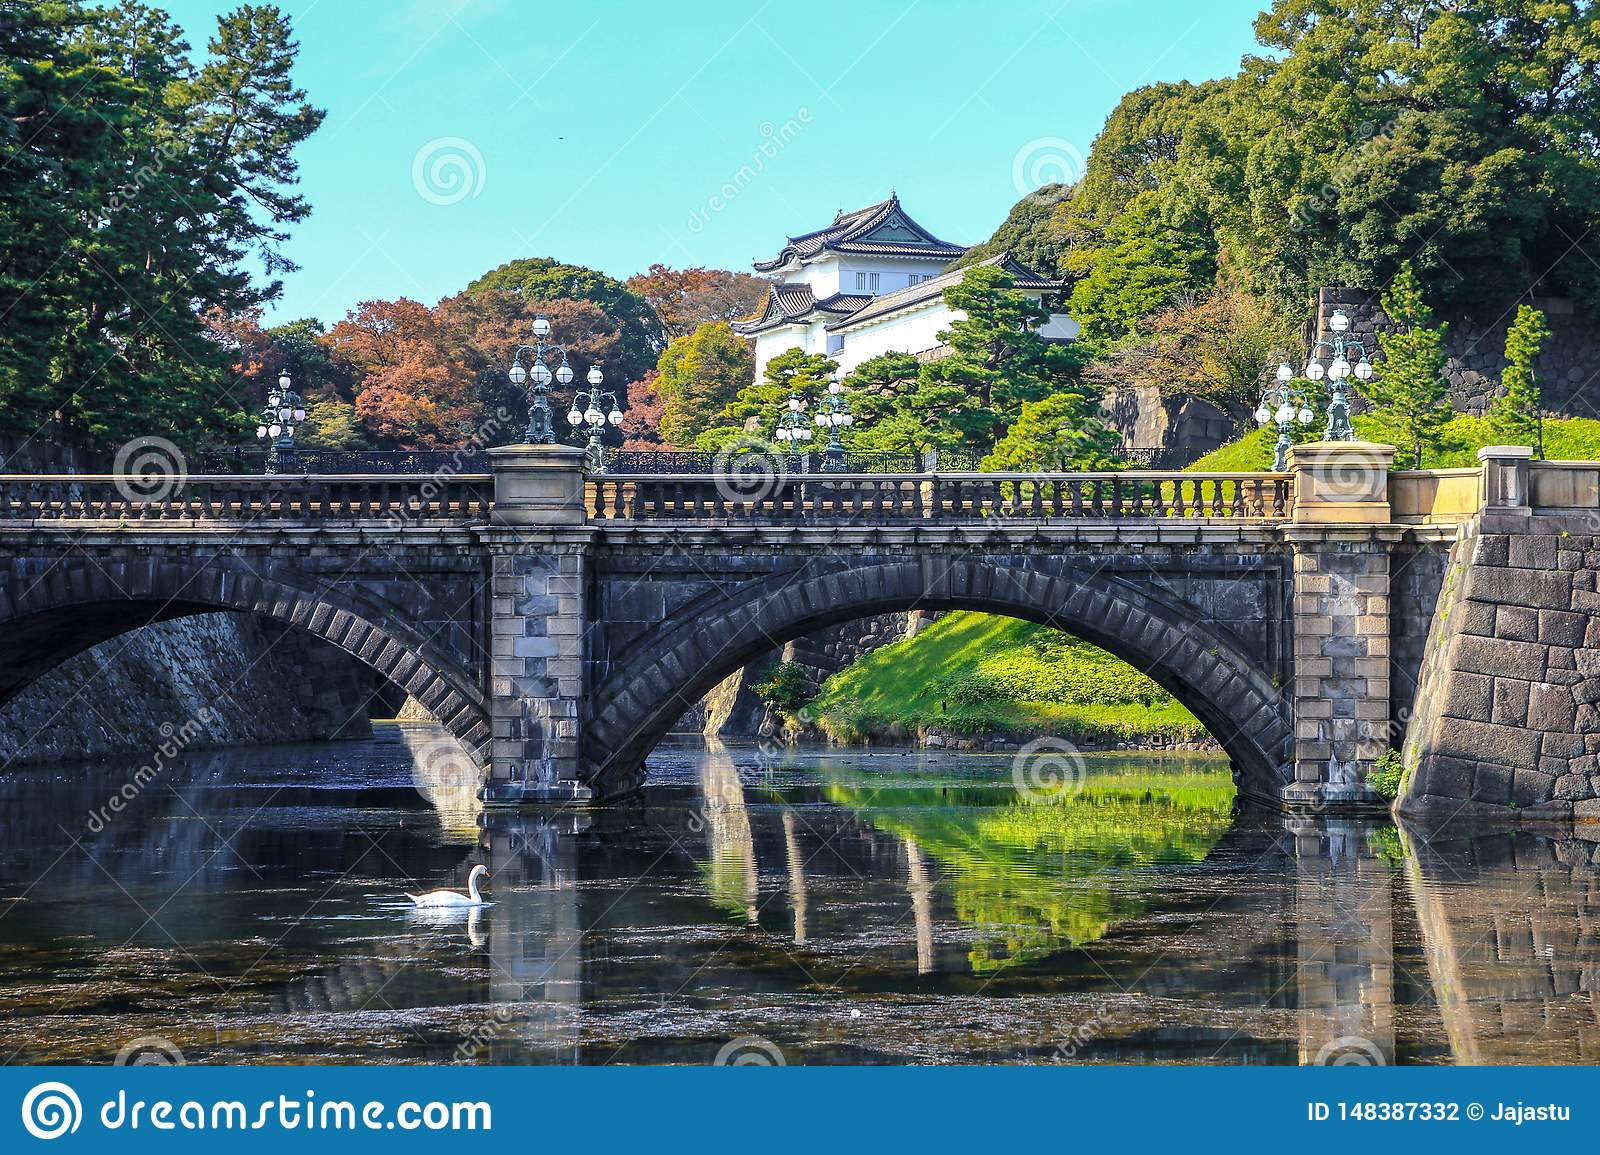 Bridge reflection and imperial palace, Tokyo, Japan.